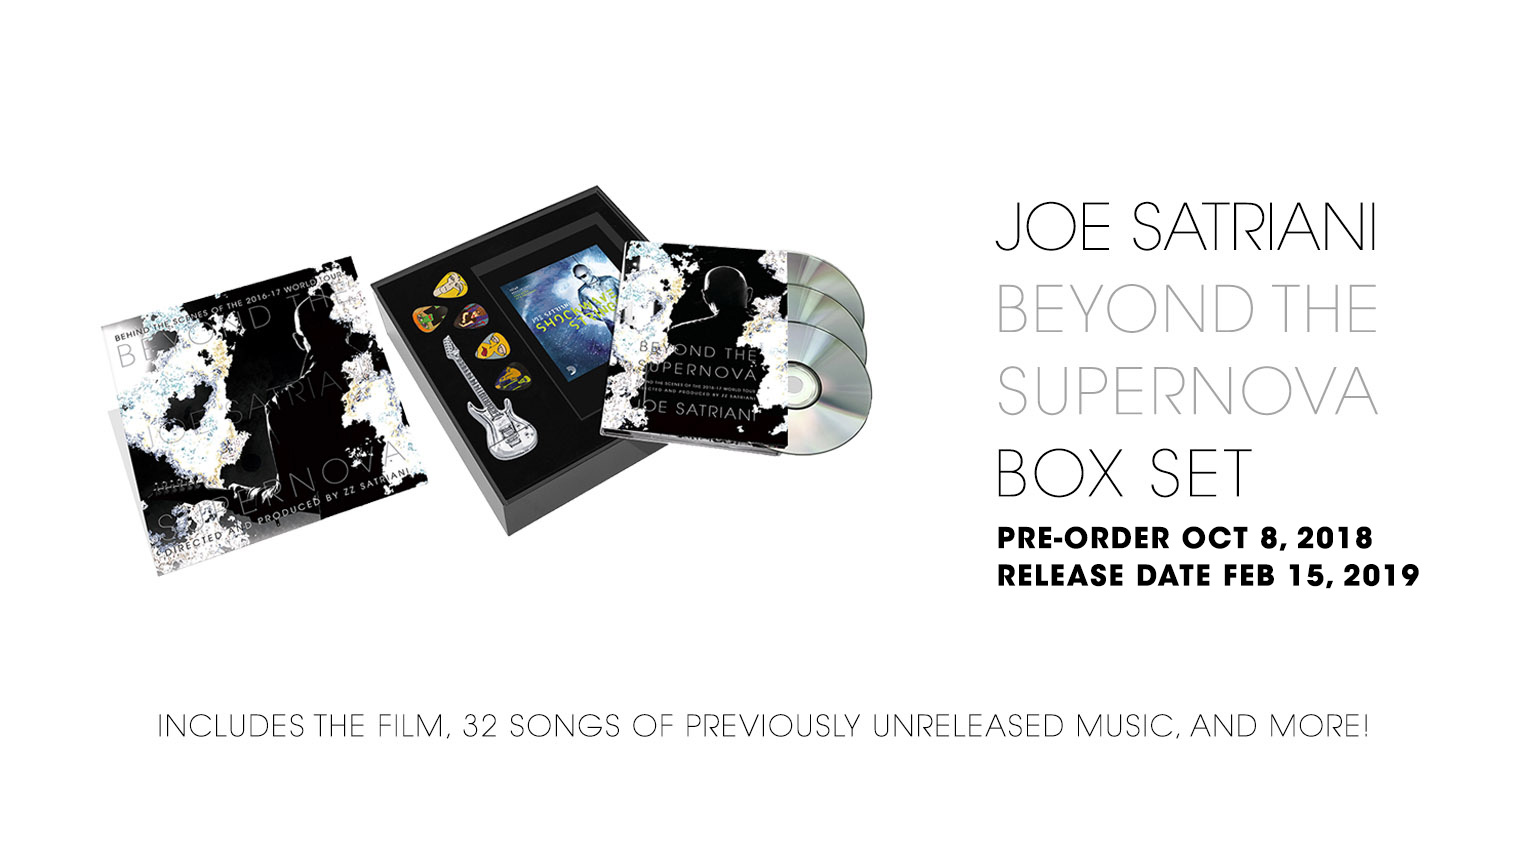 Beyond The Supernova Box Set